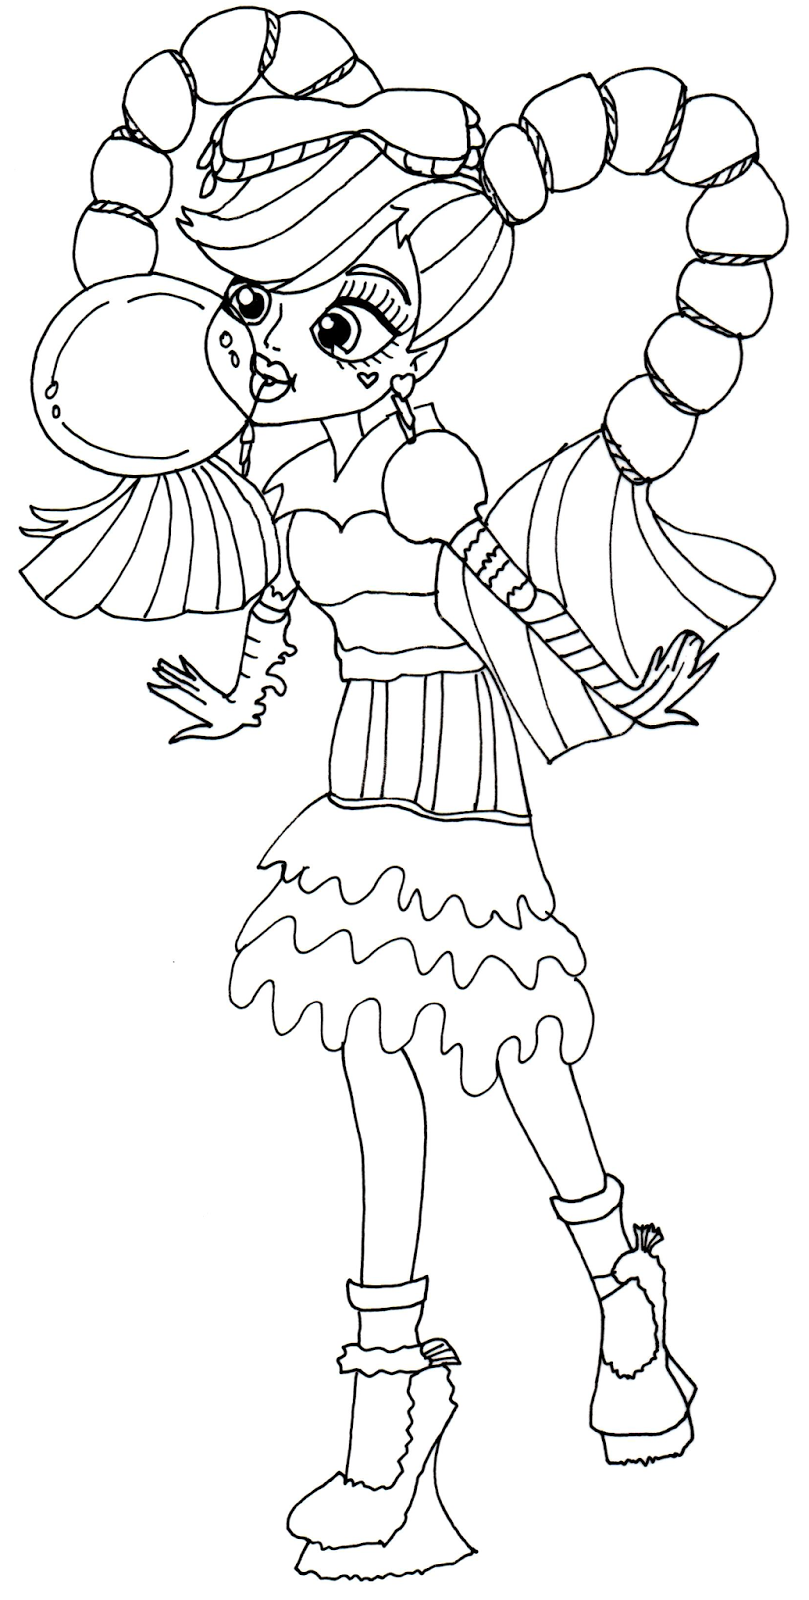 Monster High 9 Printable Coloring Pages